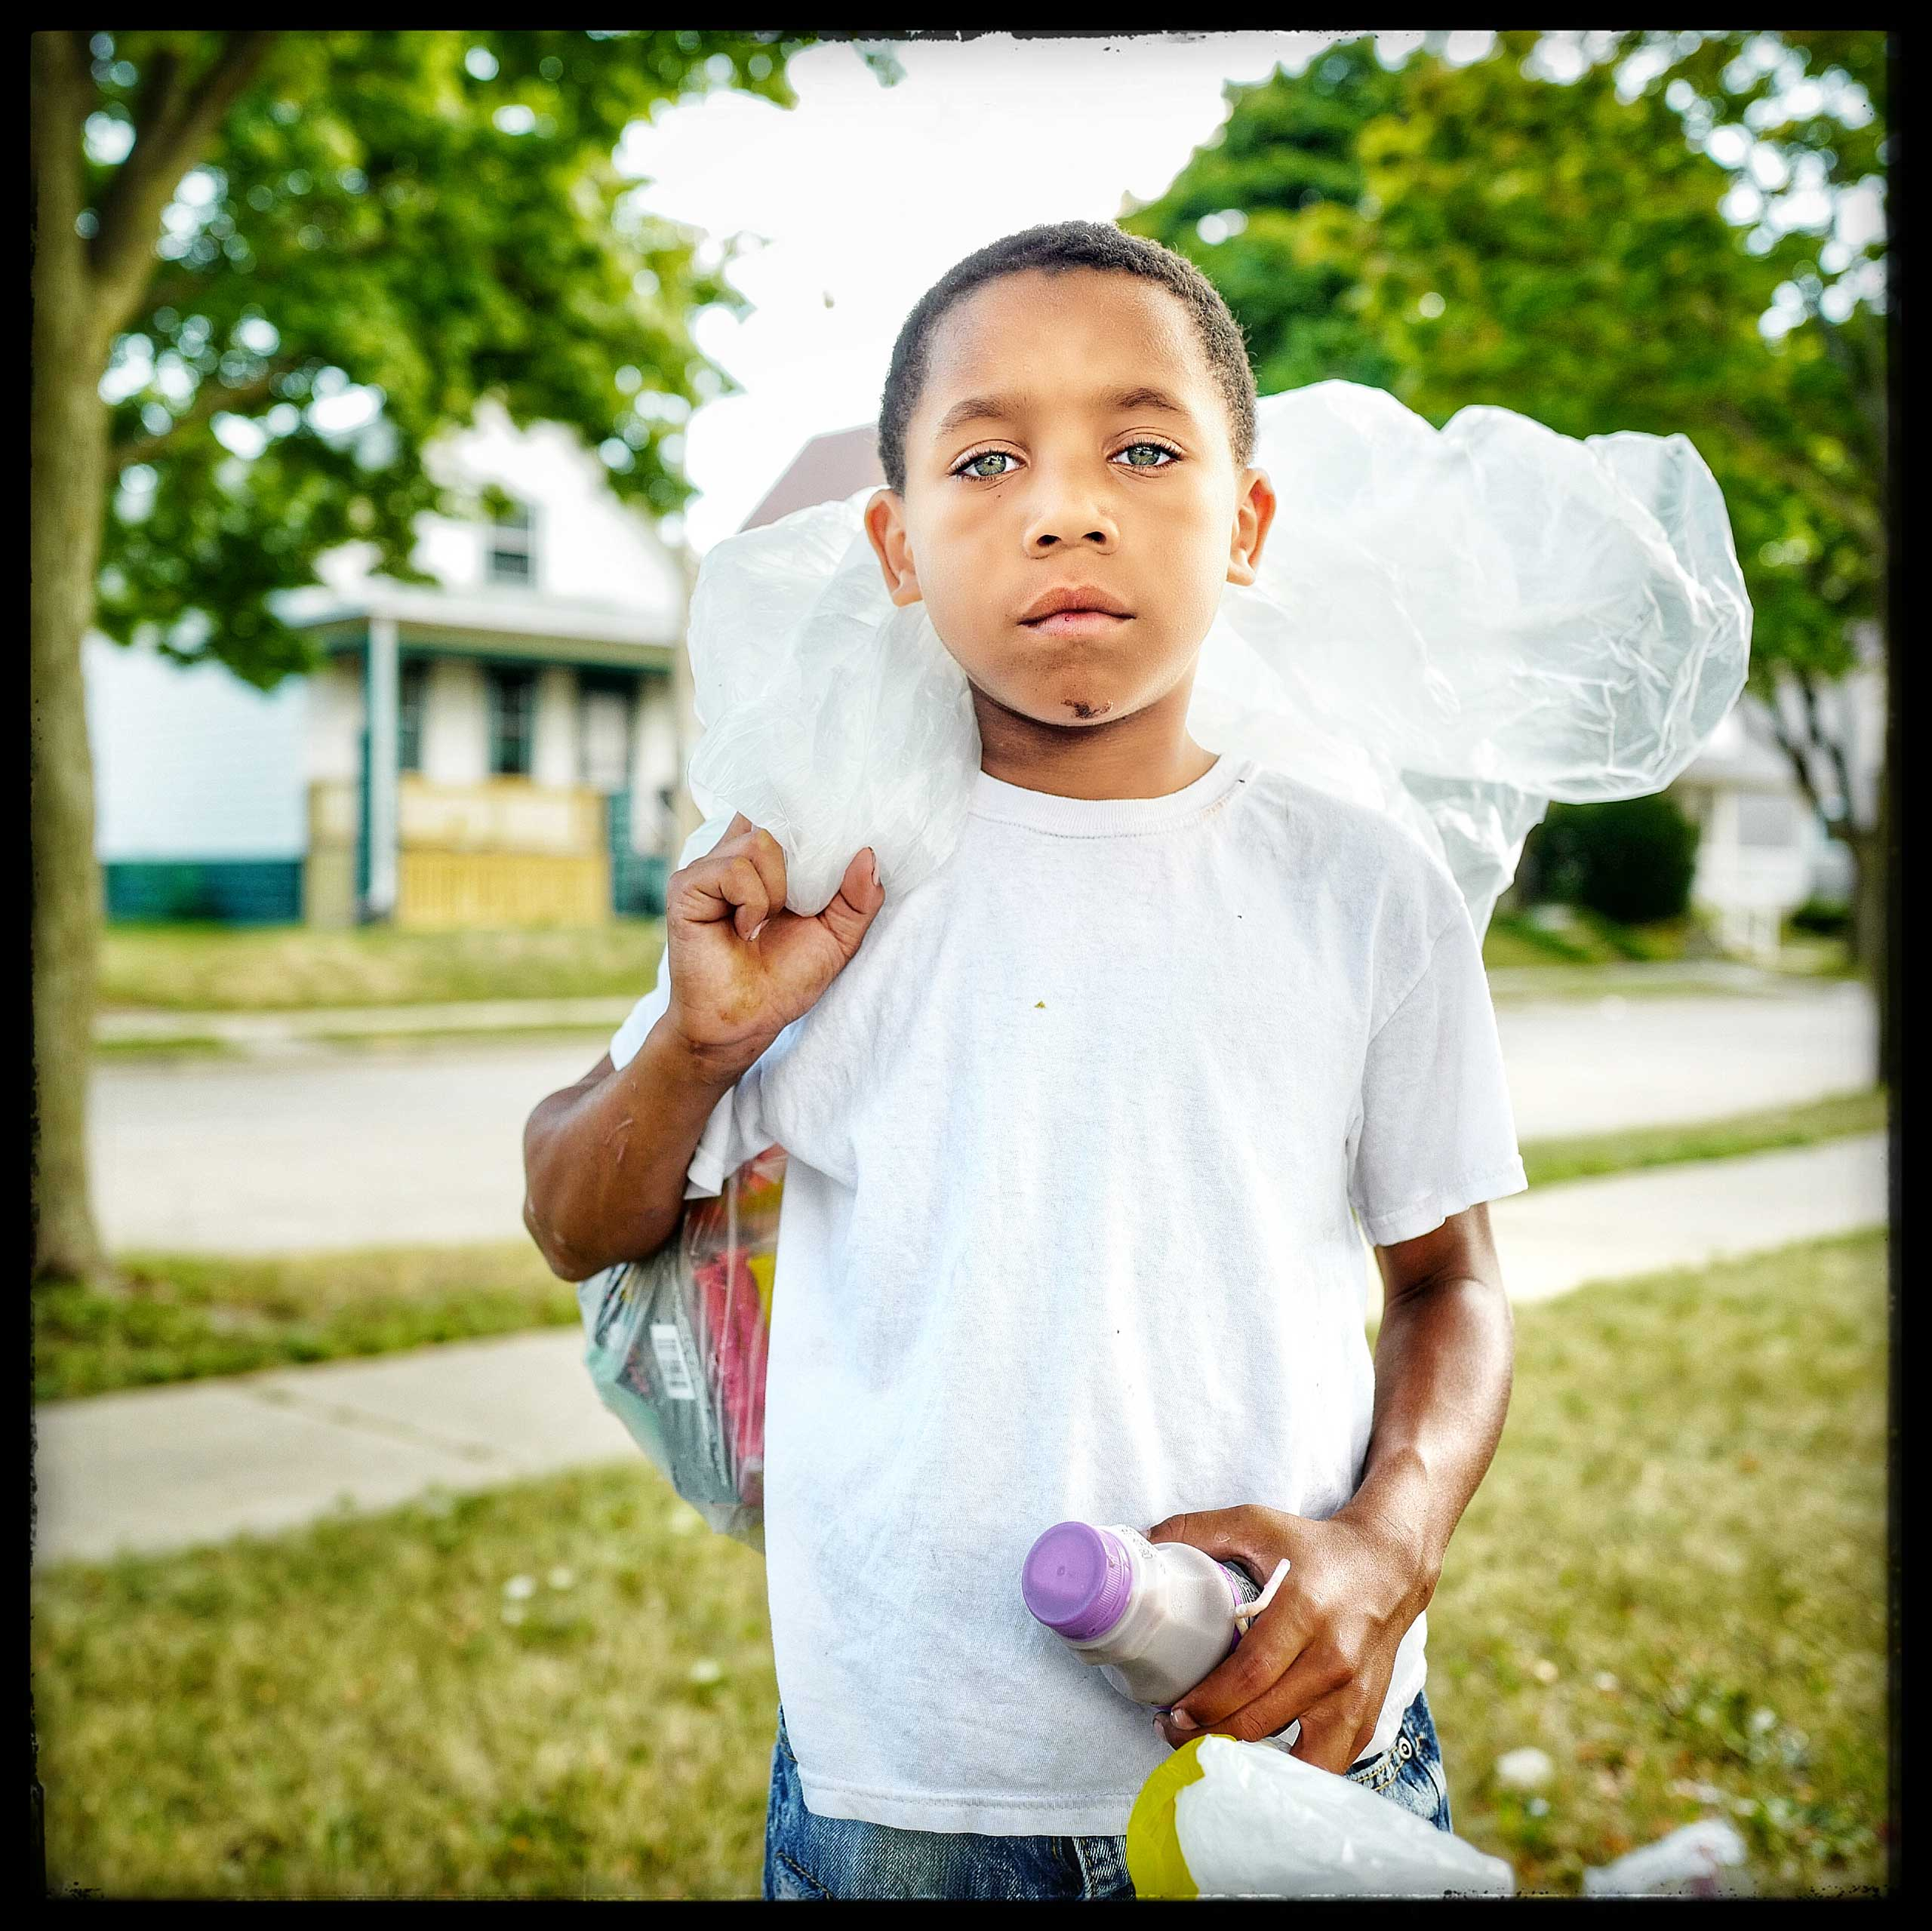 10 year old Darian after stopping at a Salvation army truck where he was given a ham sandwich, some fruits and a bottle of milk. Residents of the zipcode 53205 in Milwaukee often meet the truck around 1 pm where they are given a meal.